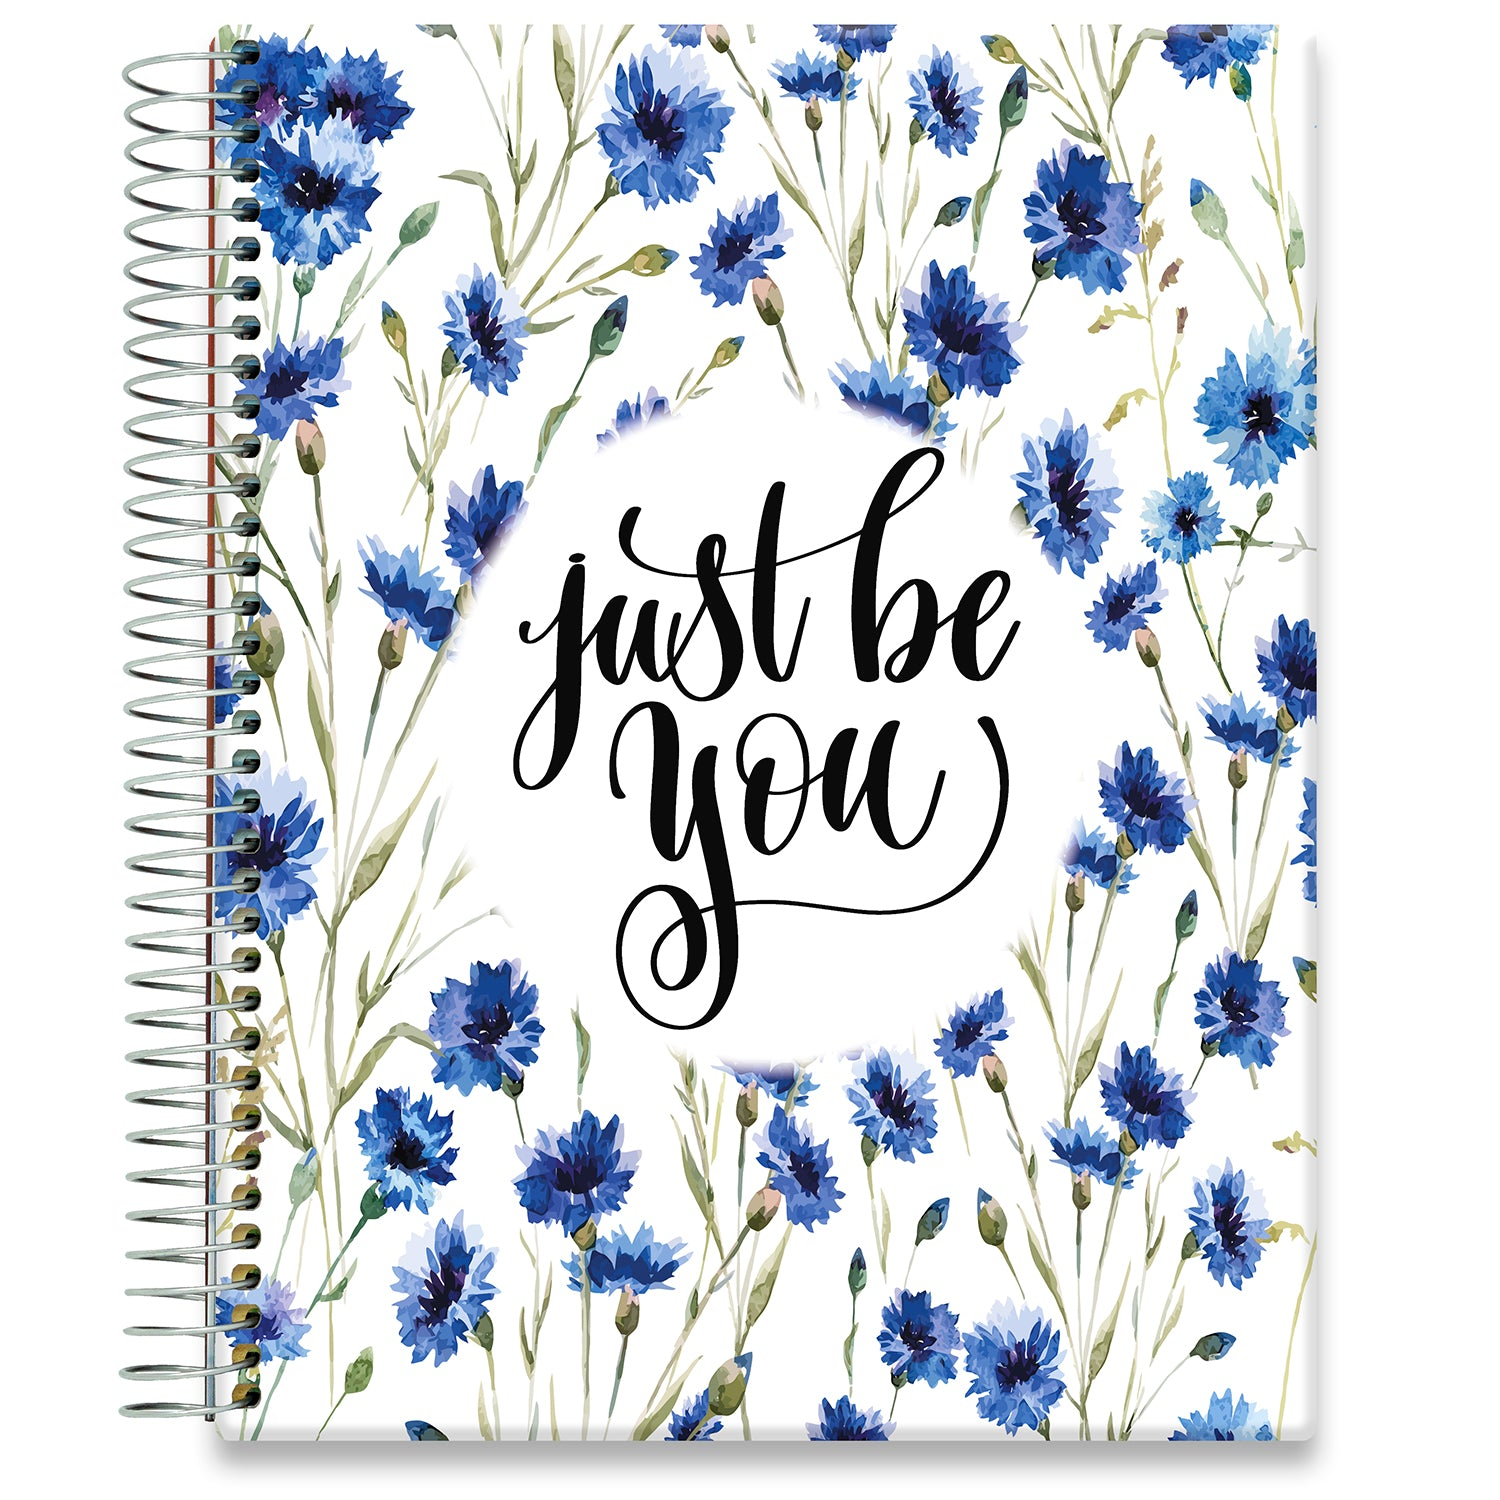 Planner 2021-2022 • April 2021 to June 2022 Academic Year • 8.5x11 Hardcover • Just Be You